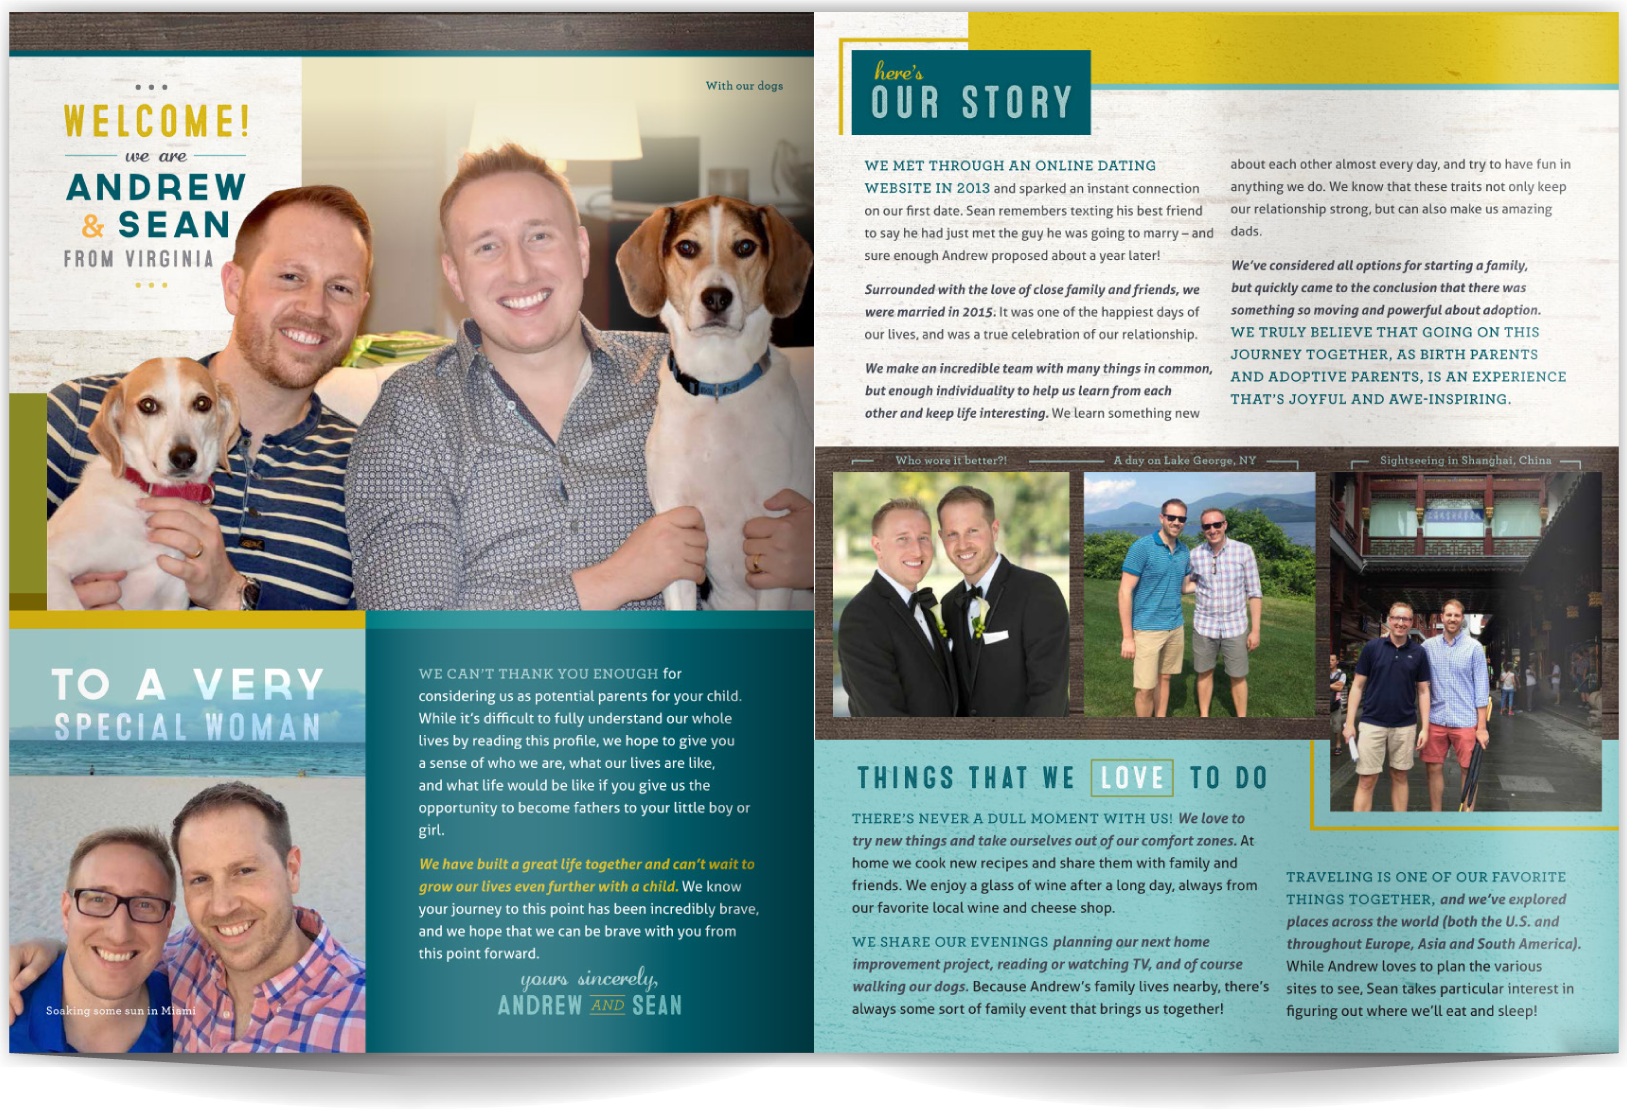 PAGE LAYOUT STYLE 9 - Polish and POP! Linear does not equal boring, and organized does not equal dull. In fact, the tightly ordered layout enhances the photos and makes the copy easy to read. Rich colors and great photos make this layout both engaging and playful.